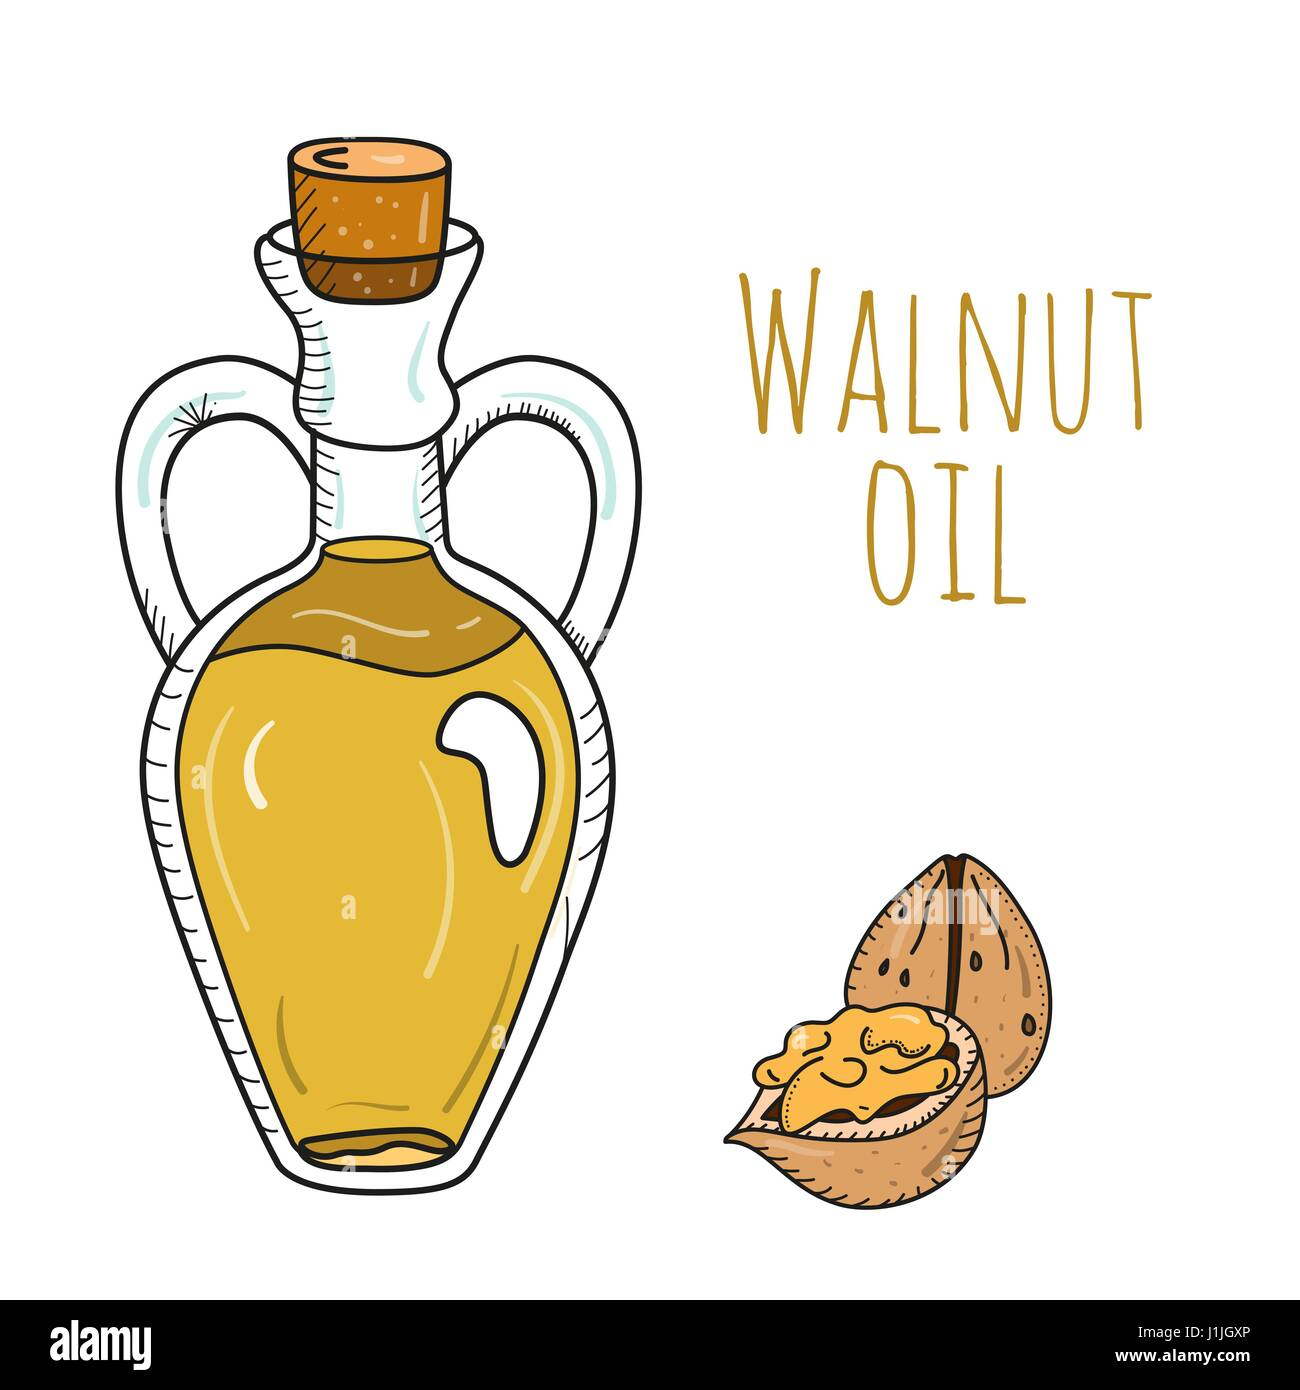 Colorful hand drawn walnut oil bottle - Stock Vector